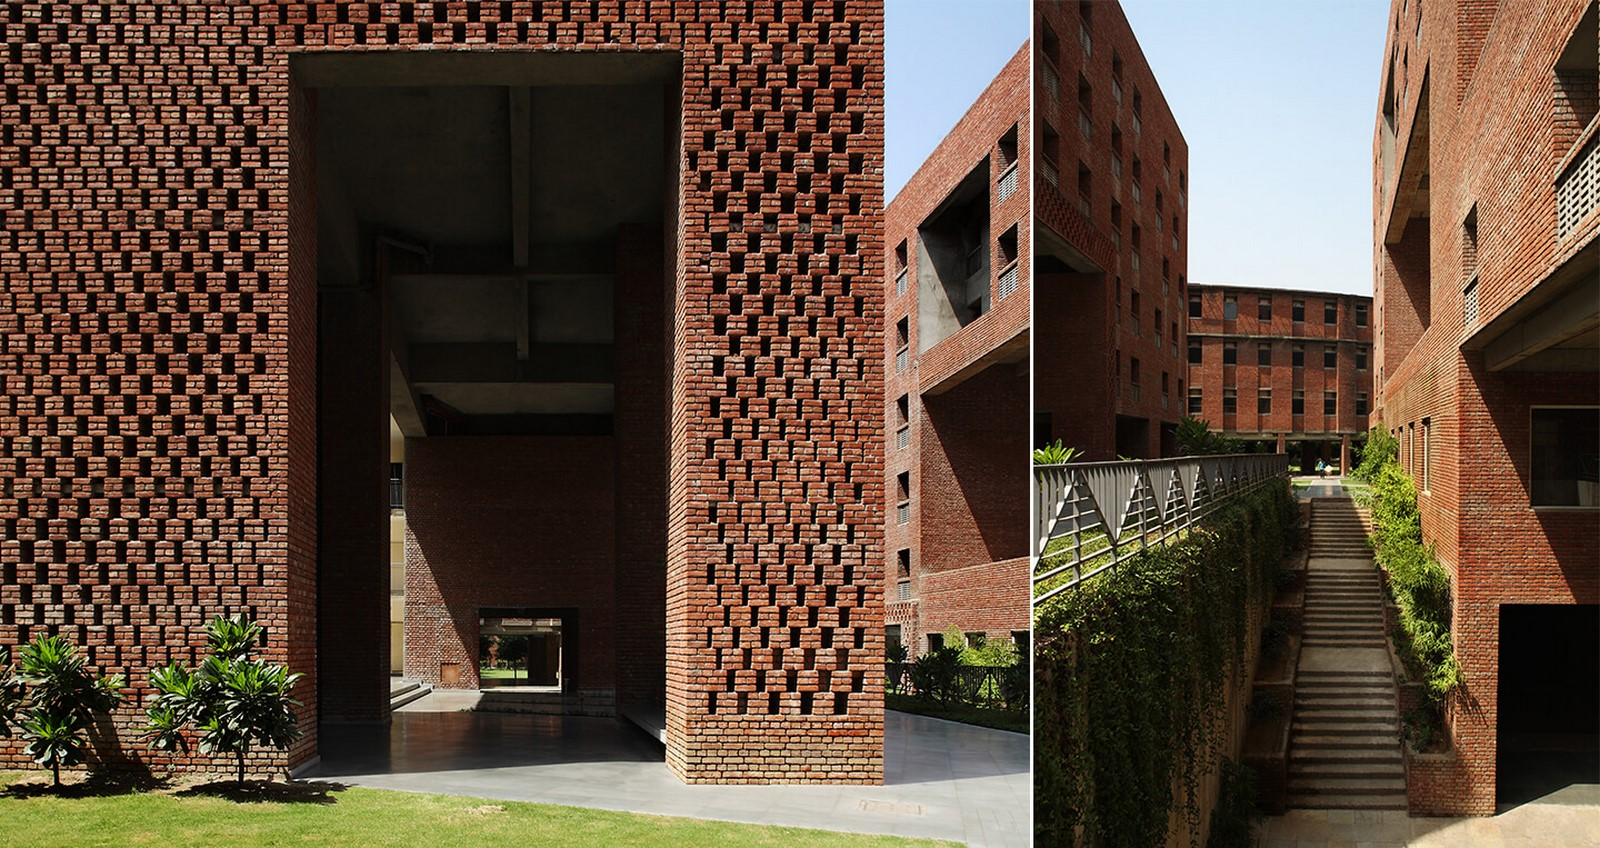 Housing Complex at Institute for Integrated Learning in Management by Morphogenesis- Inspired by Shahjahanabad settlement - Sheet5